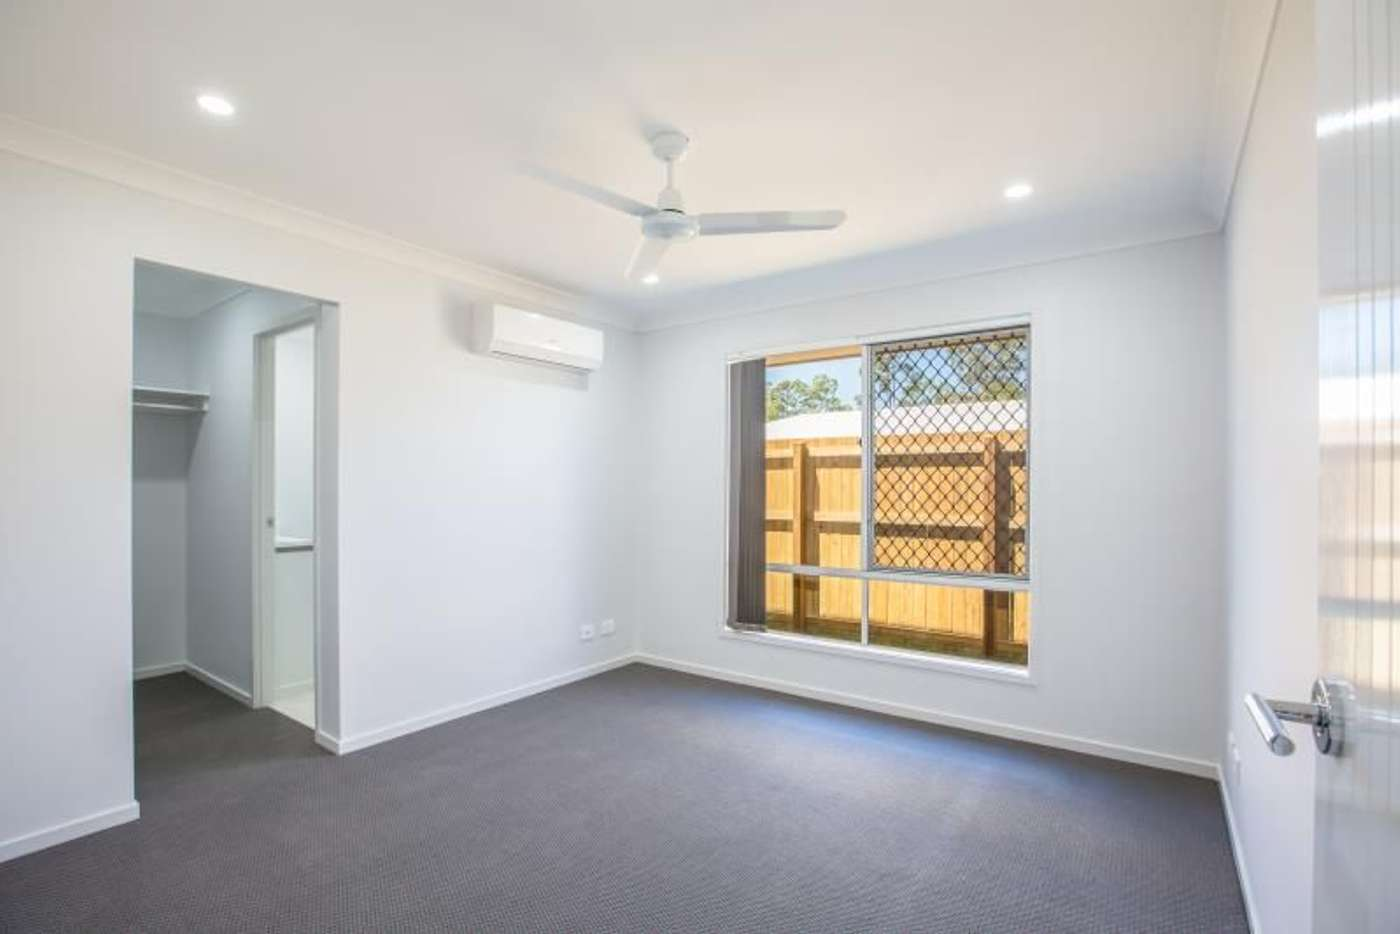 Sixth view of Homely house listing, 53 Willow Circuit, Yarrabilba QLD 4207